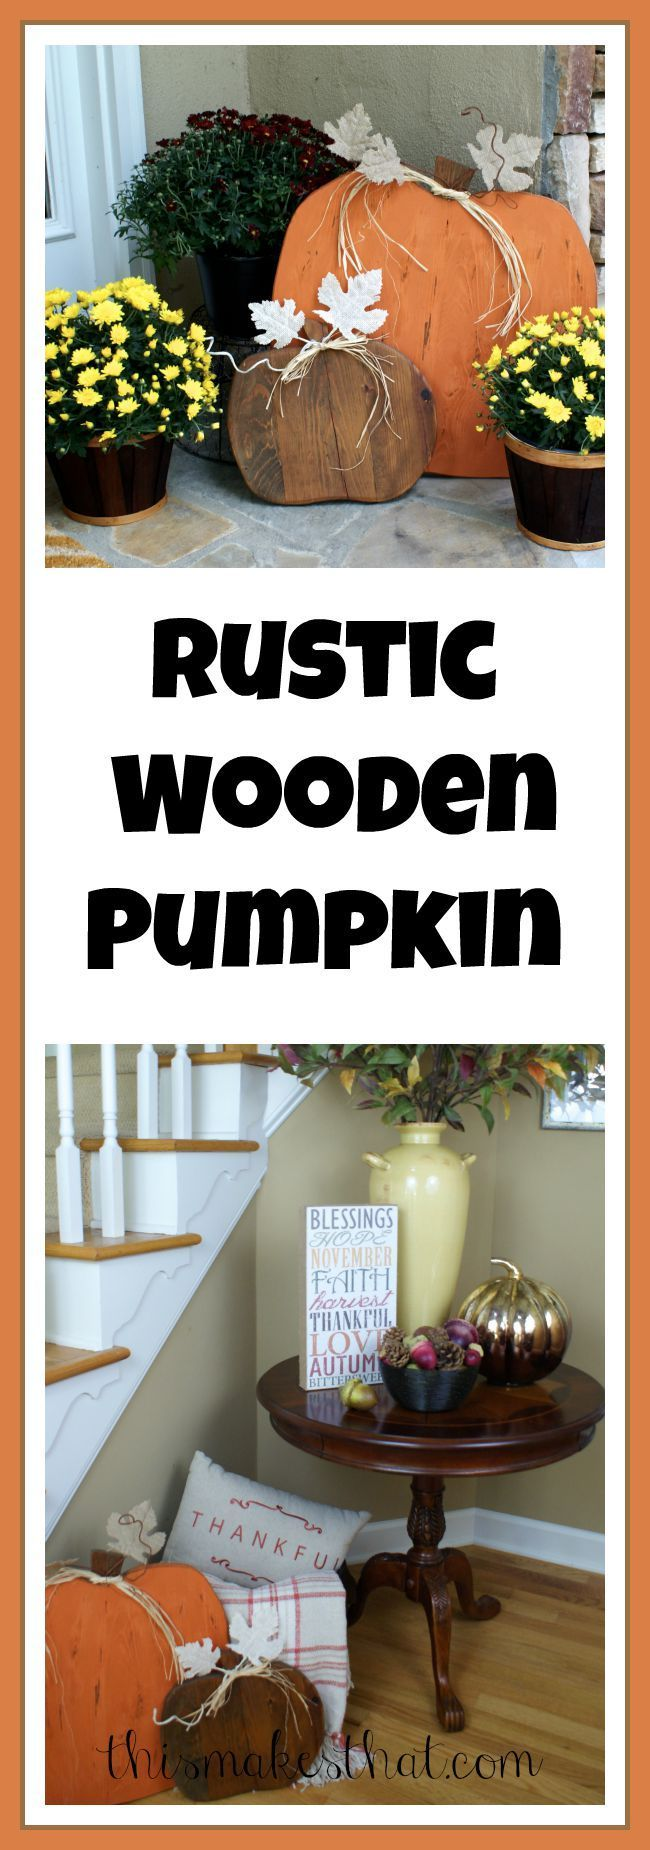 Add this rustic wooden pumpkin to your fall decor.  It's very easy to make.